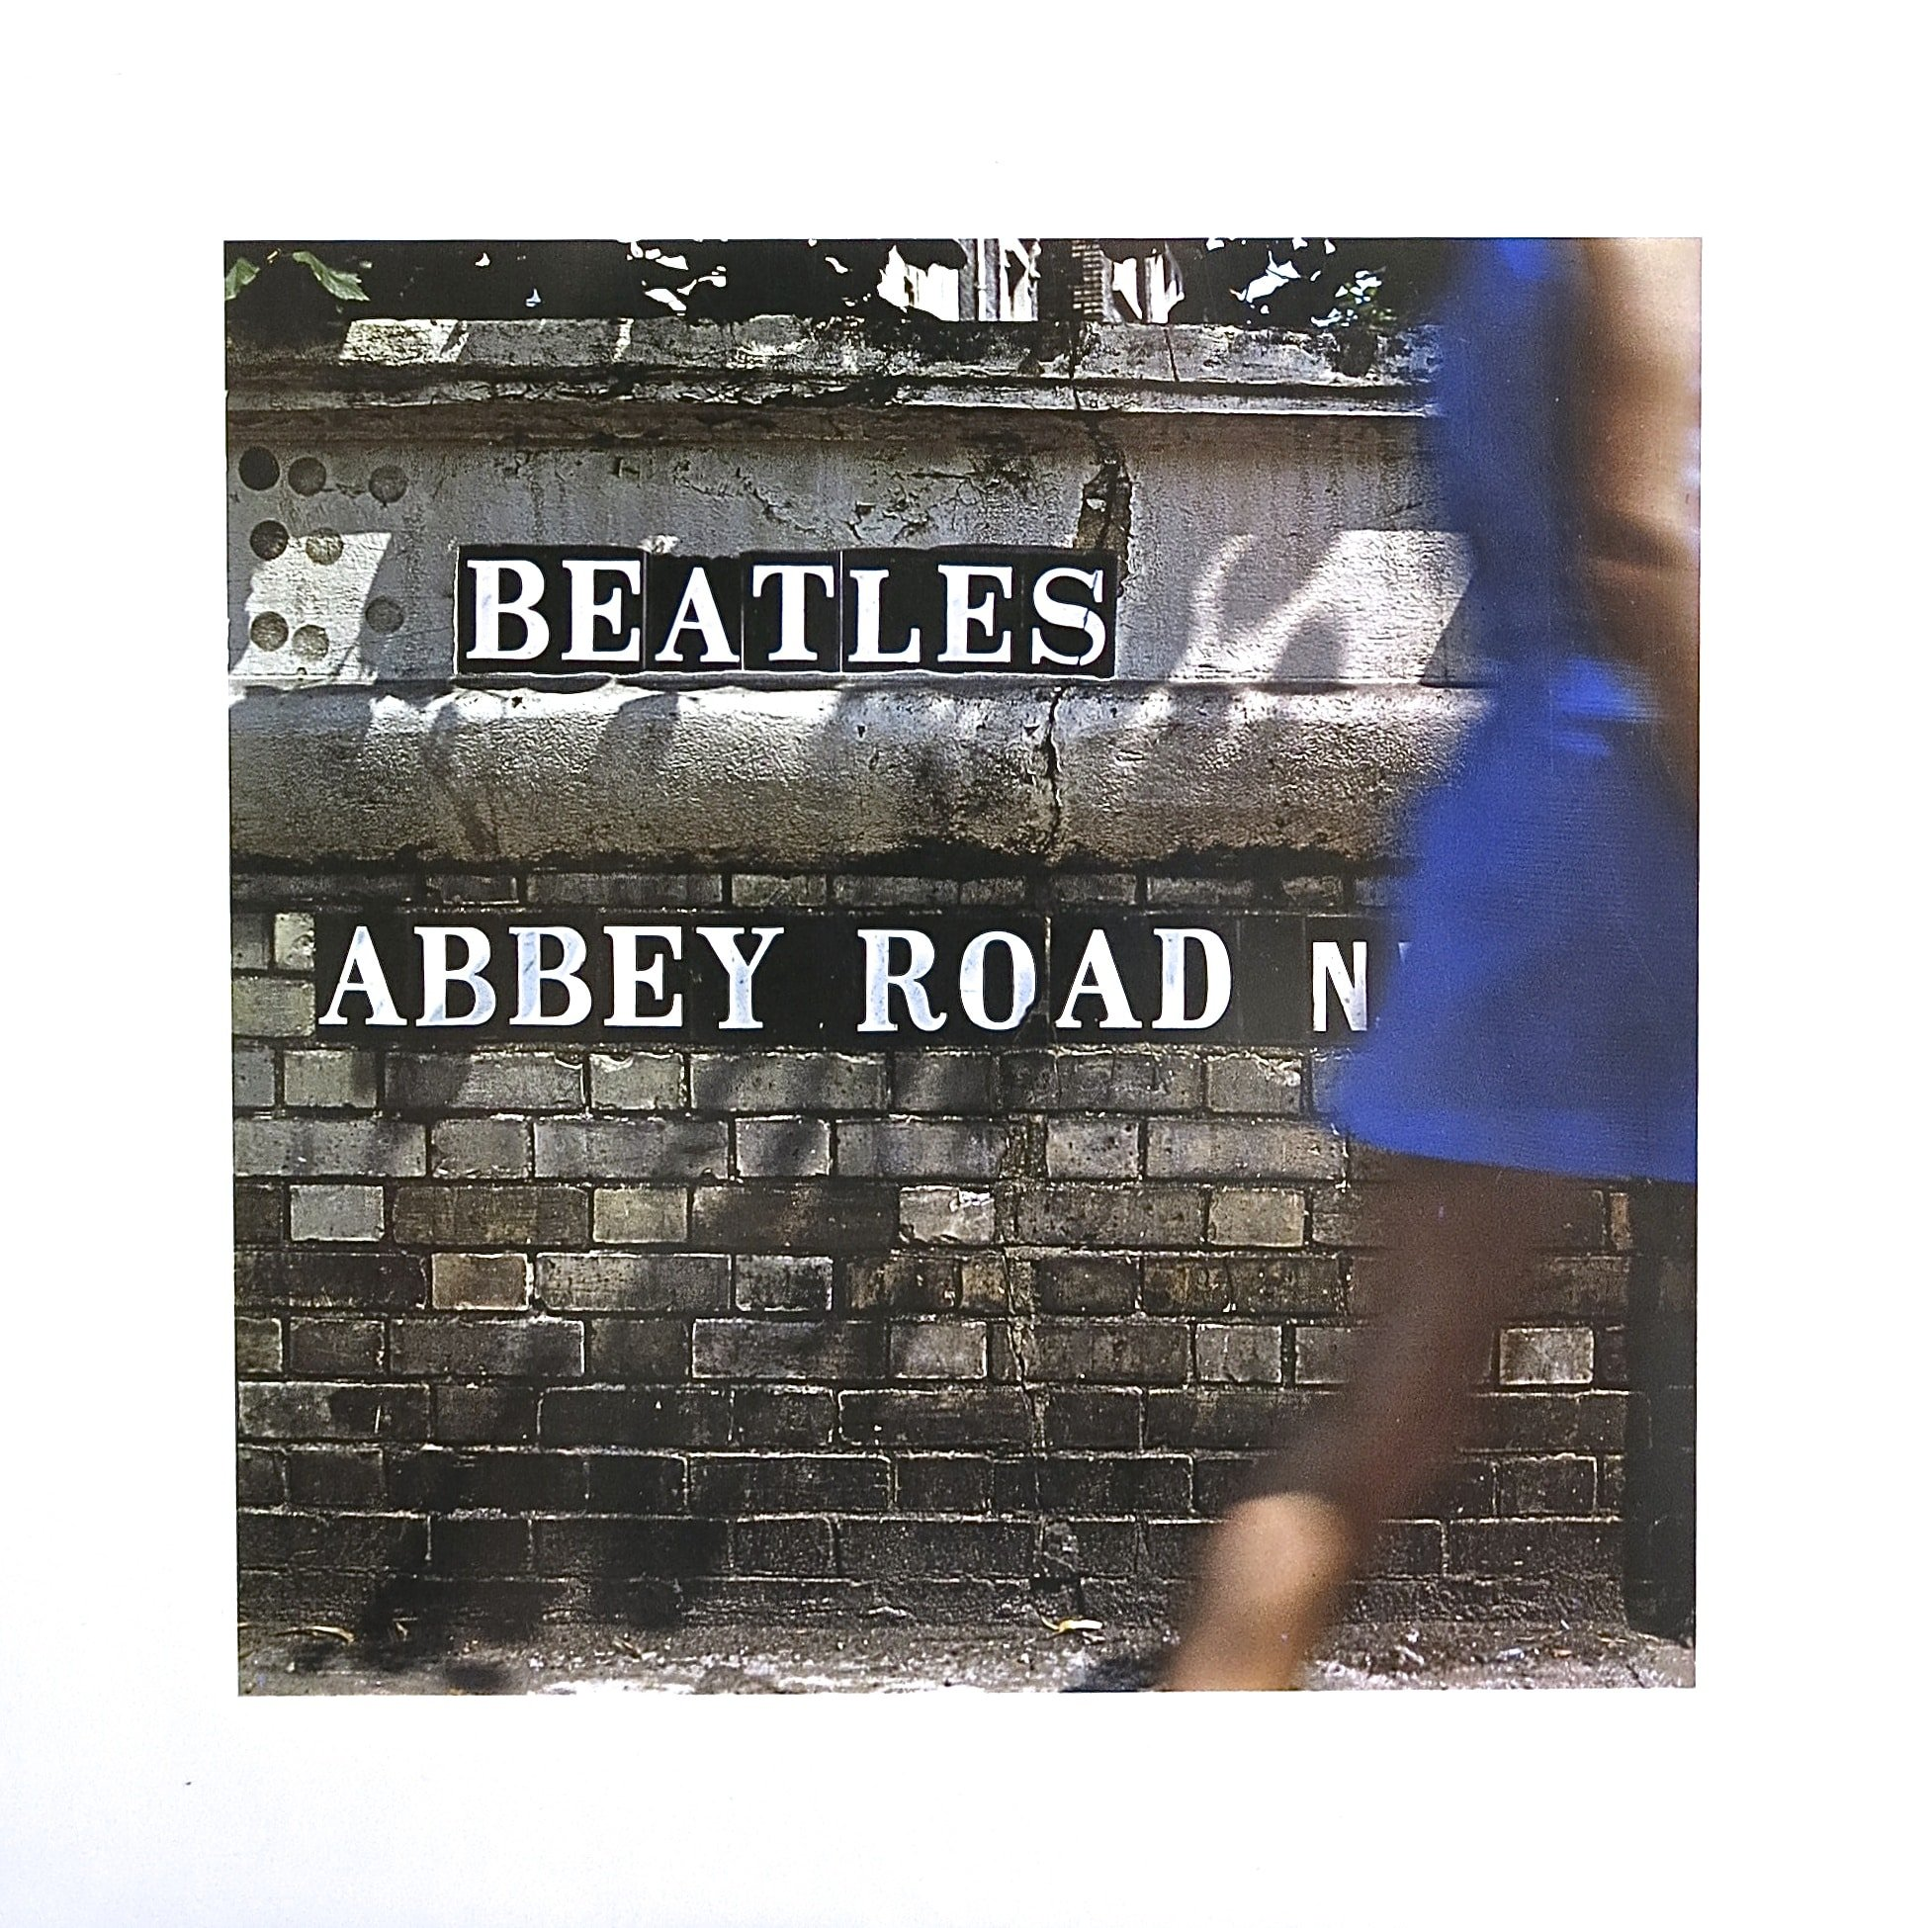 "The Beatles – Original Artwork From ""Abbey Road"" Album Cover"